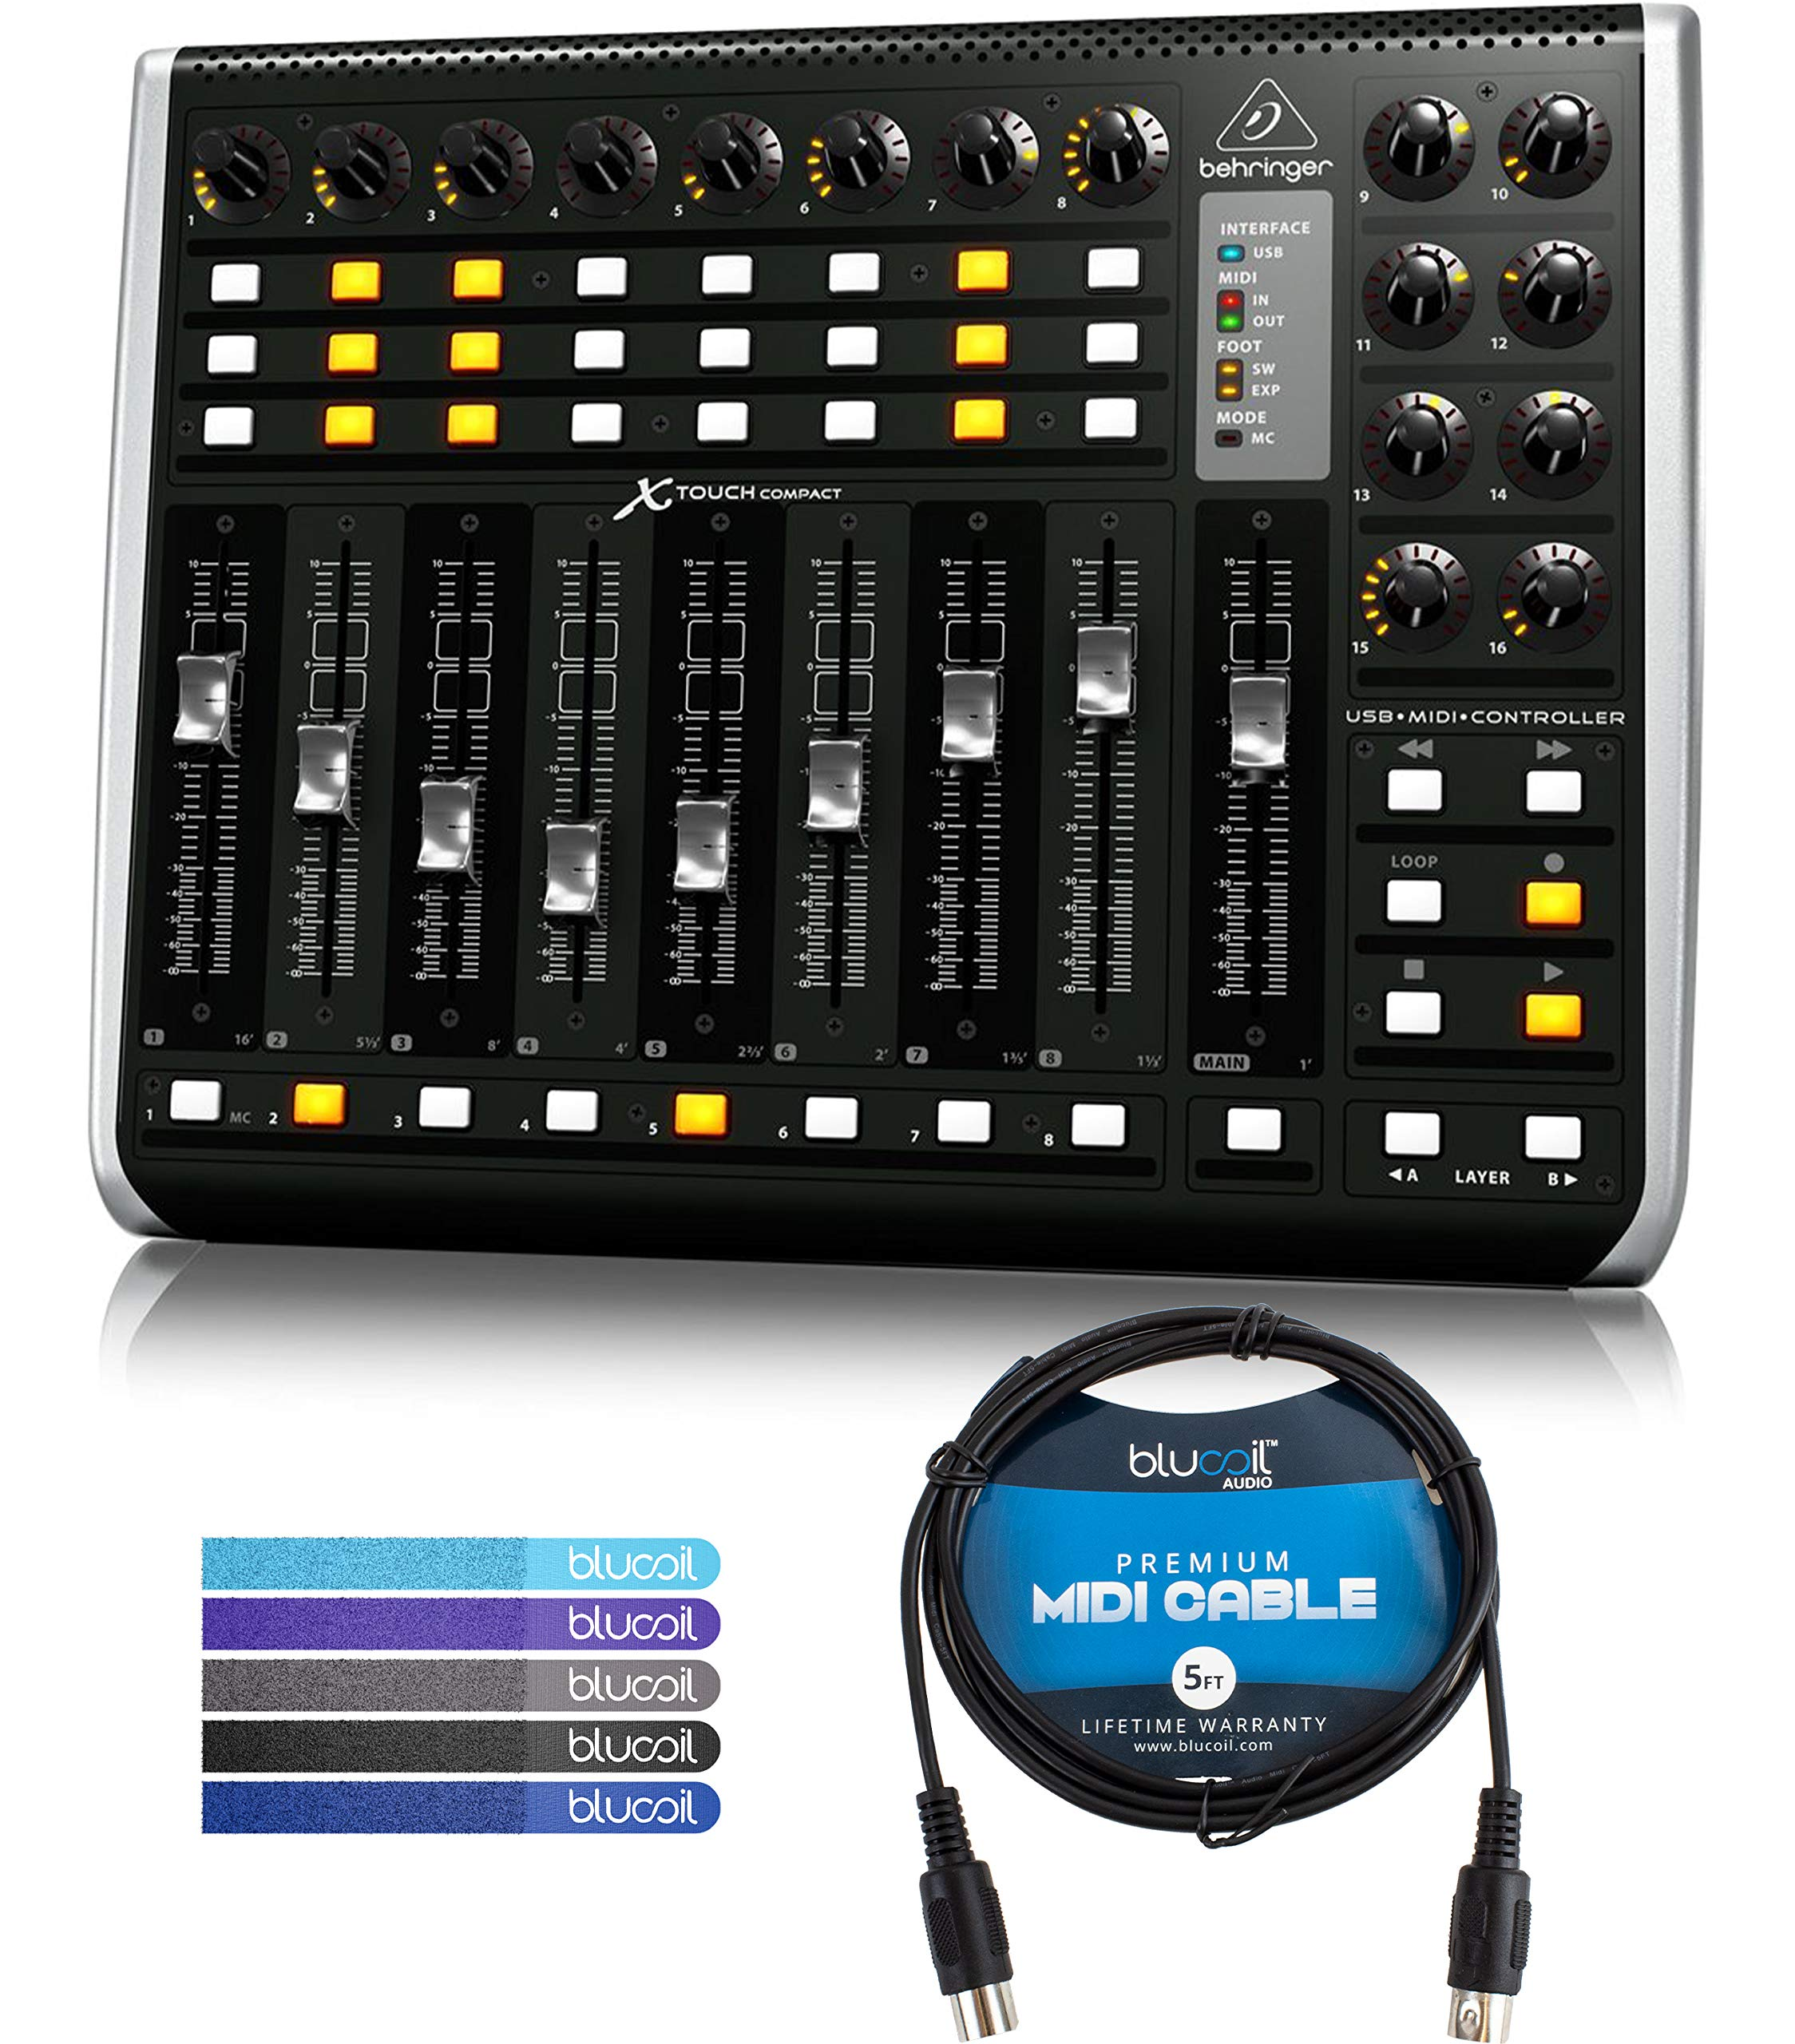 Behringer X-TOUCH COMPACT MIDI/USB Controller with 9 Motor Faders Bundle with Hosa MID-305BK 5-ft MIDI Cable and 5 Pack of Blucoil Cable Ties